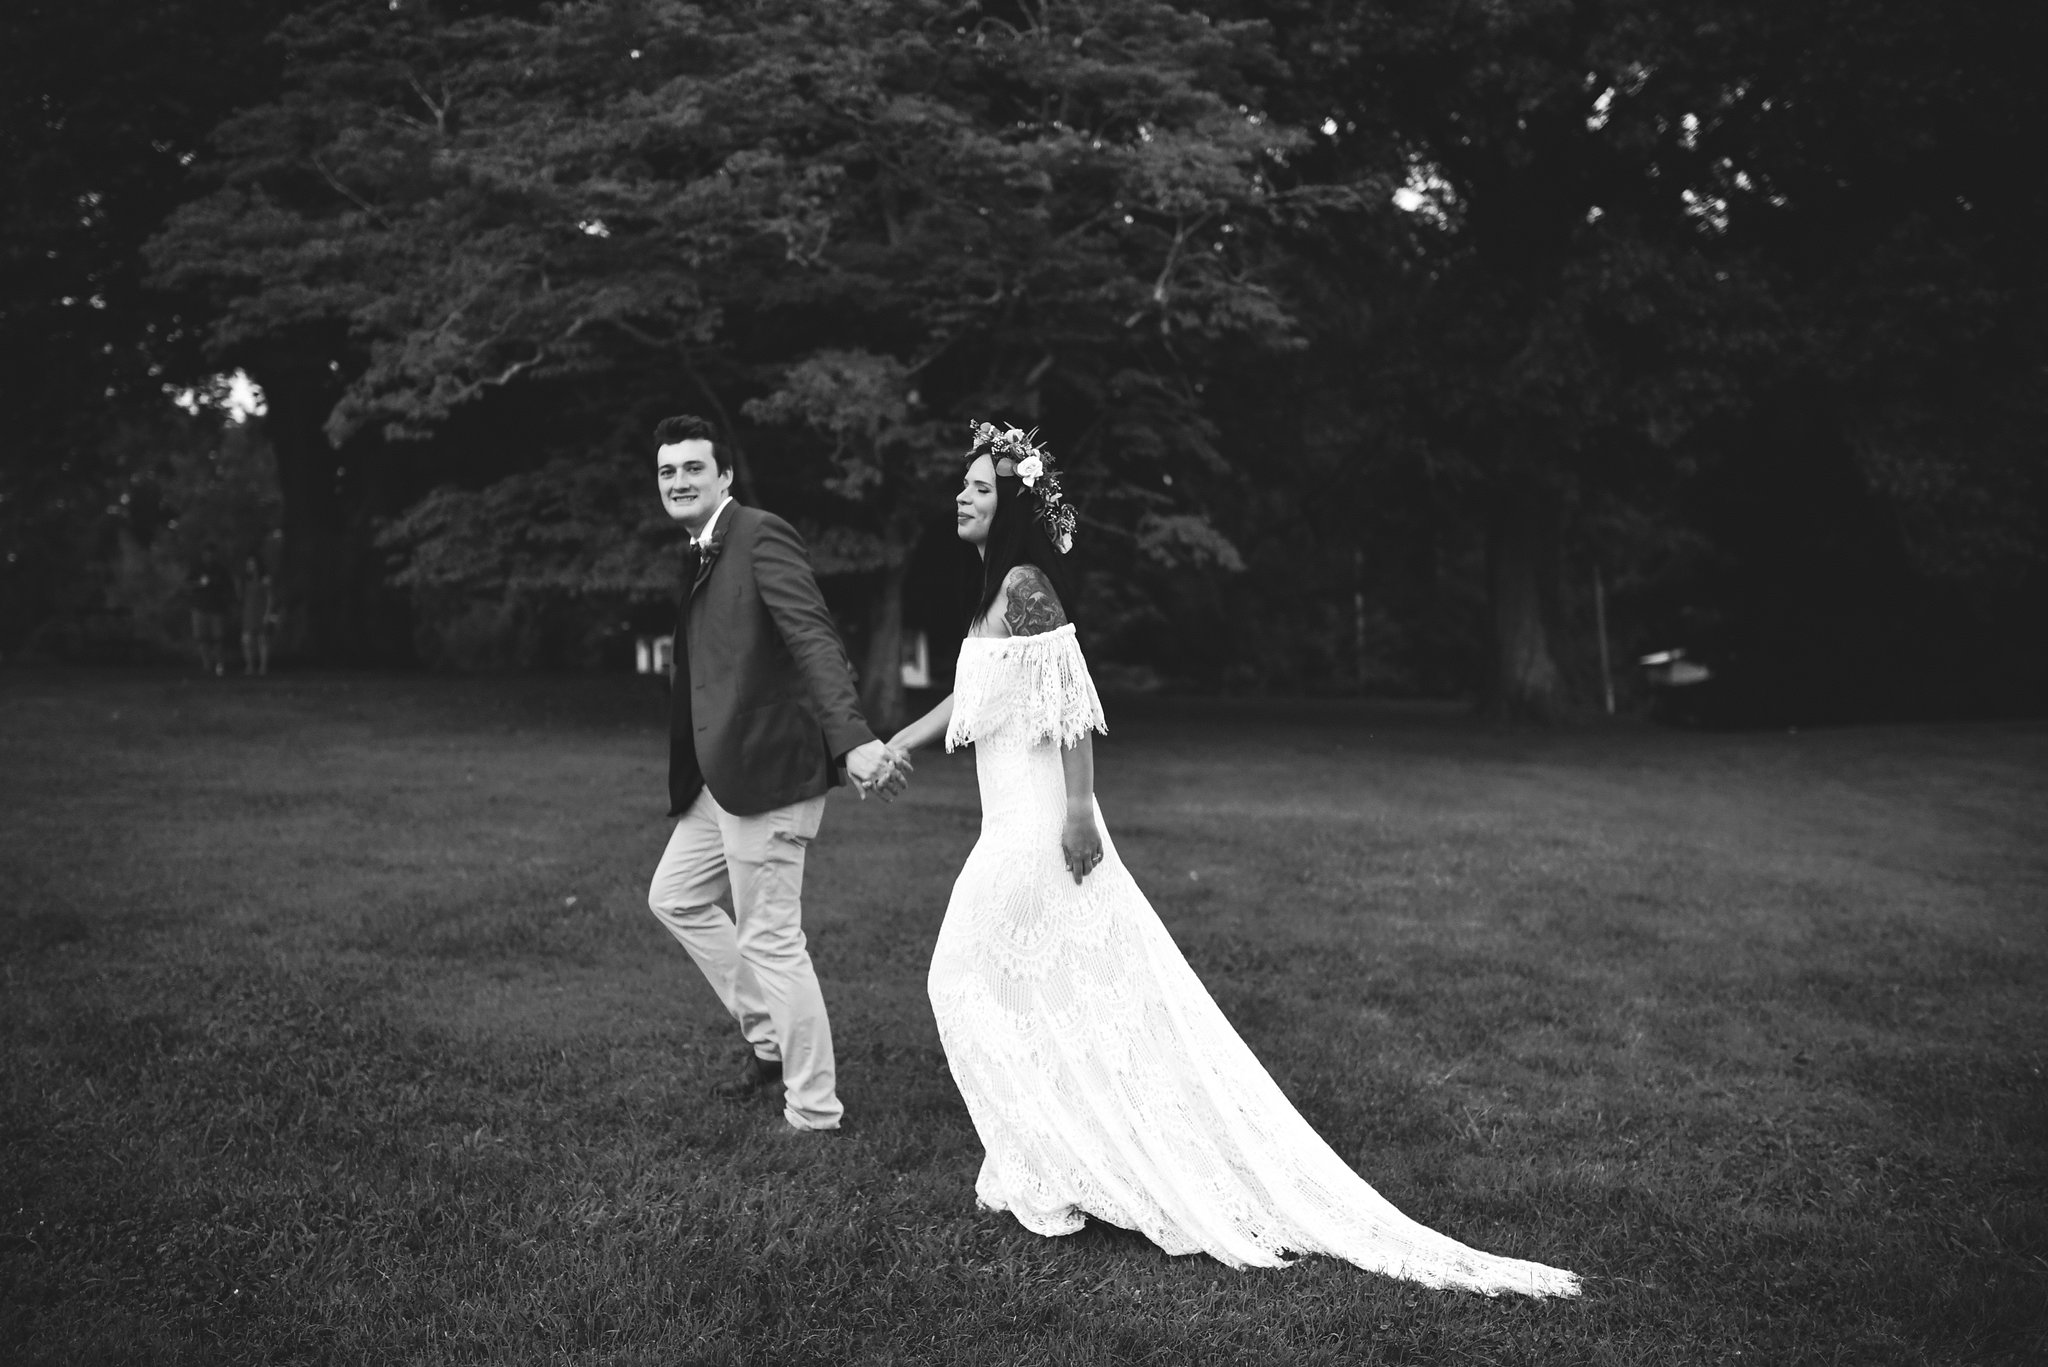 Maryland, Eastern Shore, Baltimore Wedding Photographer, Romantic, Boho, Backyard Wedding, Nature, Black and White Photo, Bride and Groom Holding Hands and Walking Through Field, Outdoor Reception, Daughters of Simone Wedding Dress